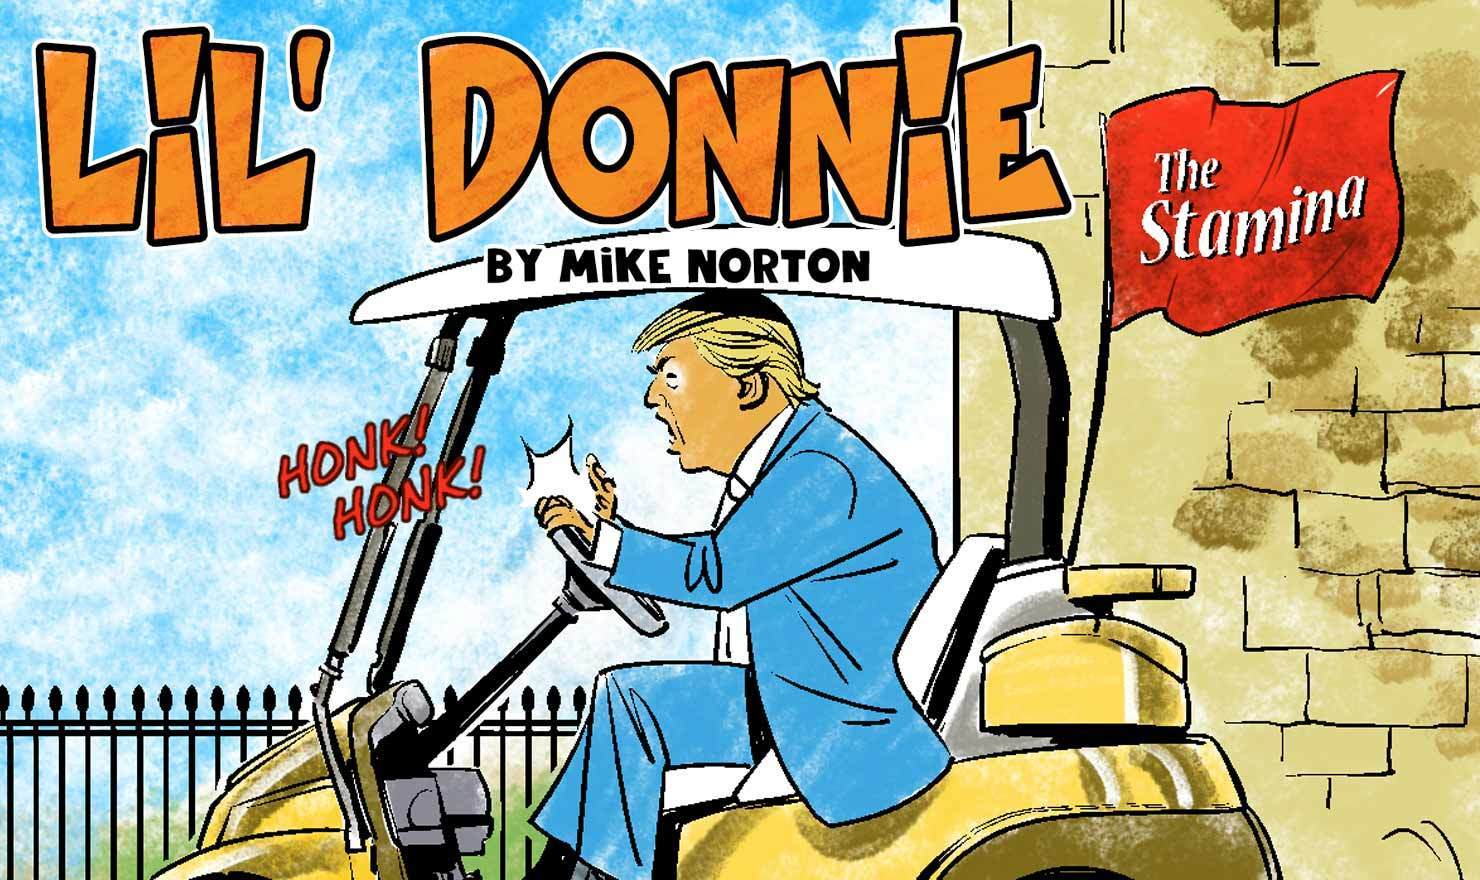 Meet Your Creator: Mike Norton Of 'Lil' Donnie'